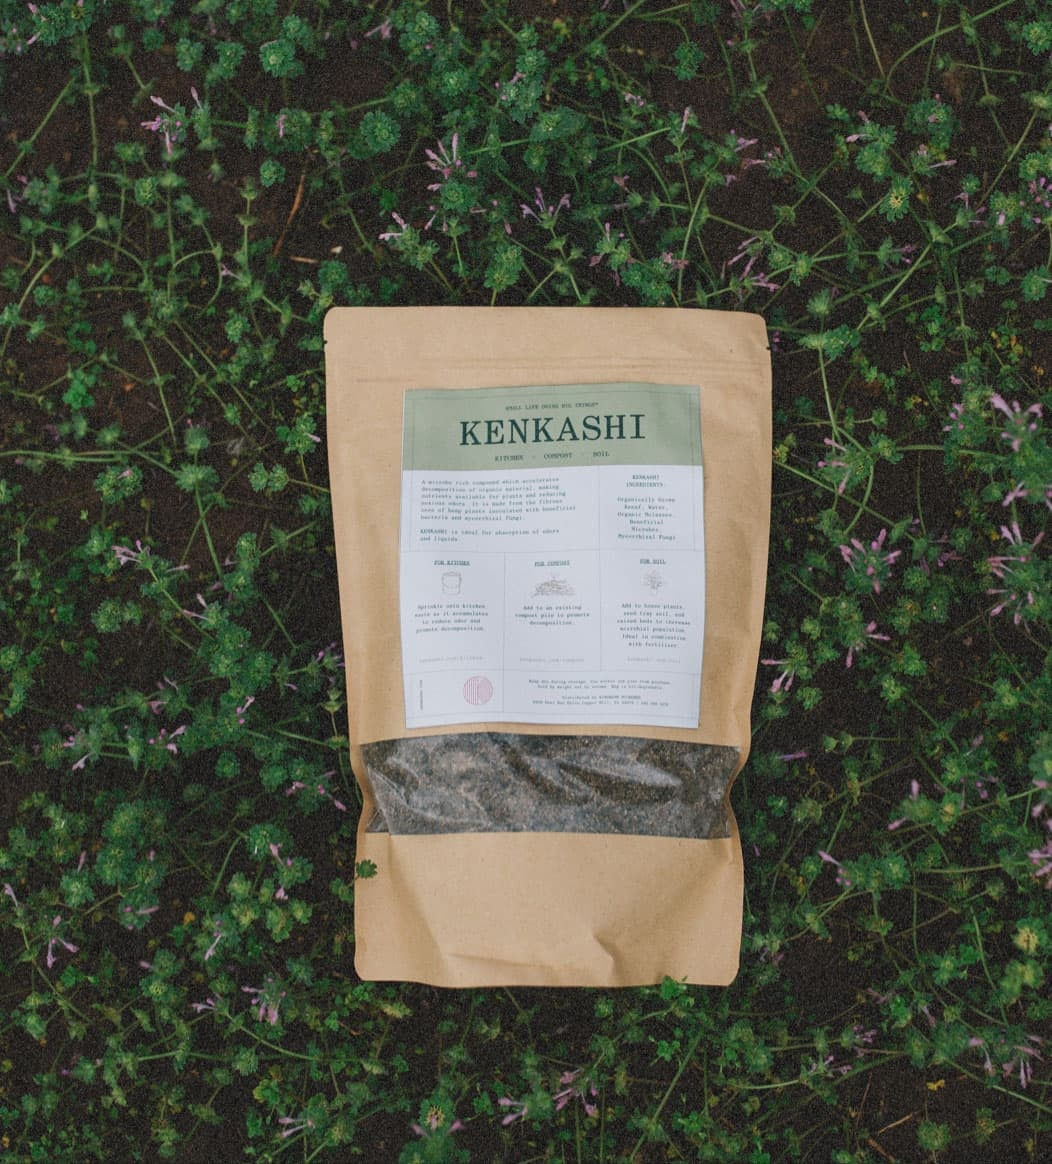 Meet Kenkashi: A Magic Microbial Bullet For Next-Level Compost